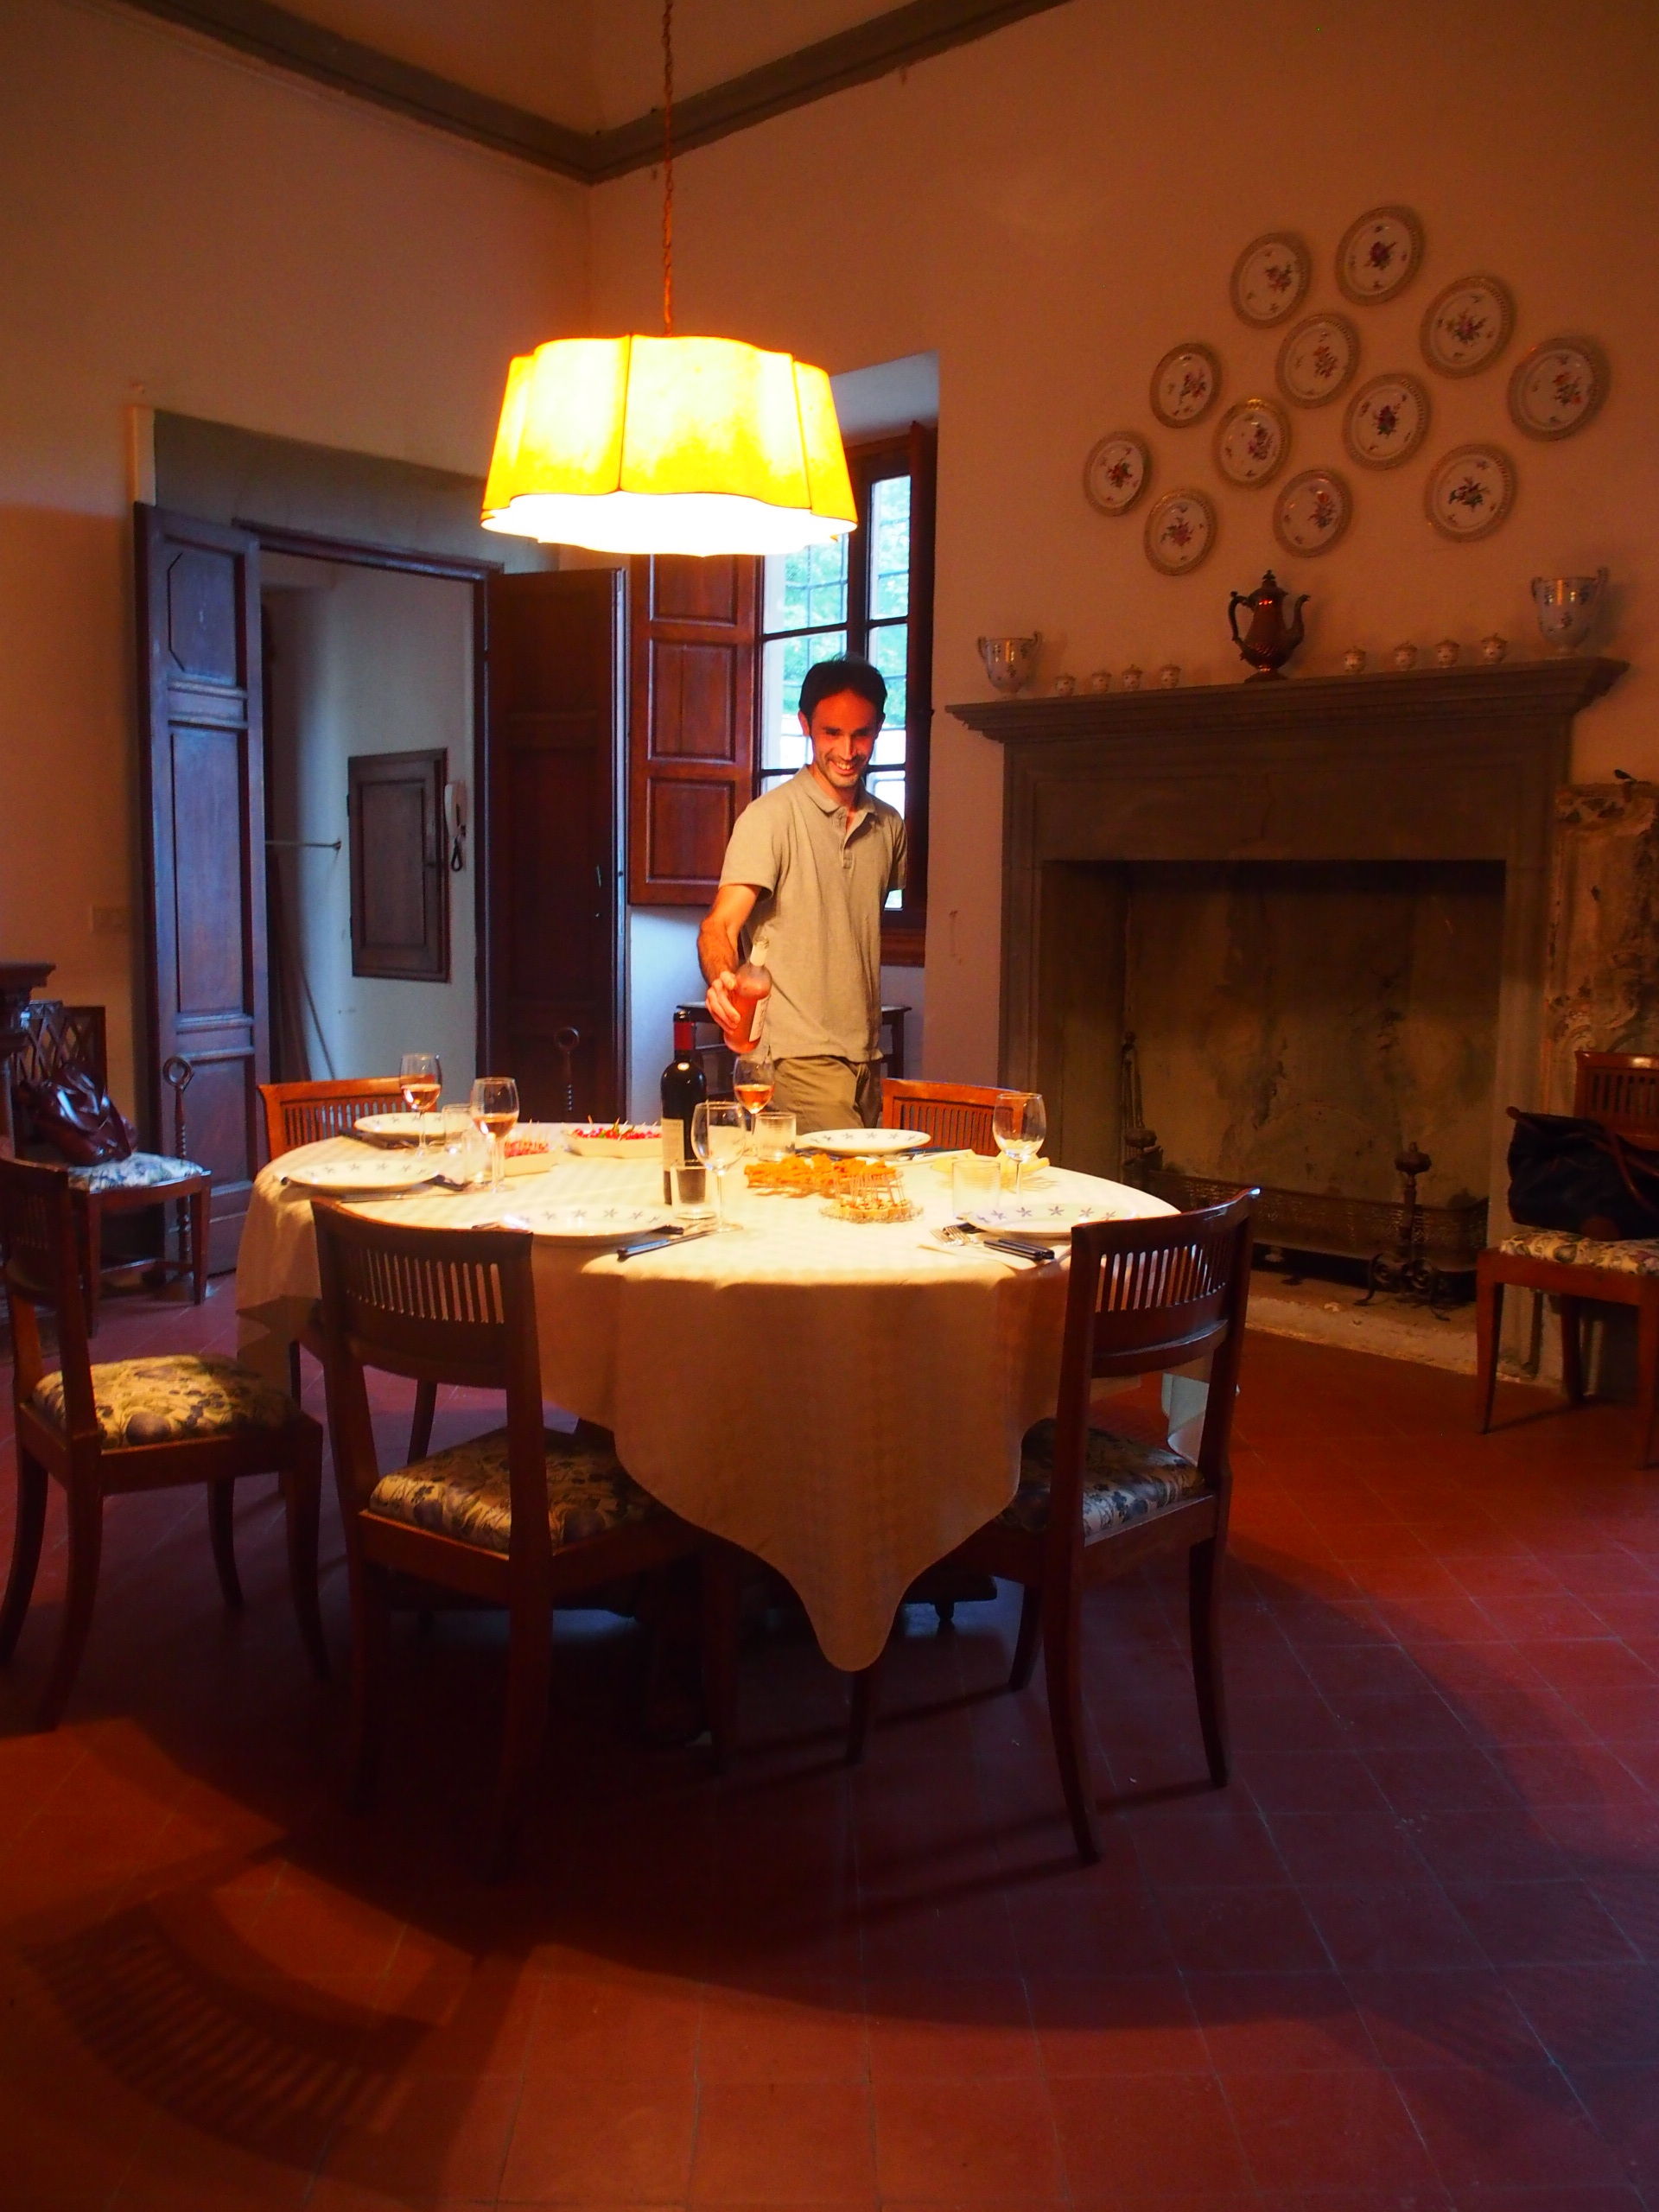 Here is pictured our personal 1/2 of our tour guides, Alessio, happily setting the table at Antinori family's Renaissance Villa Il Cigliano. We devoured their produced-wine, cheese, salad and a pasta dish.